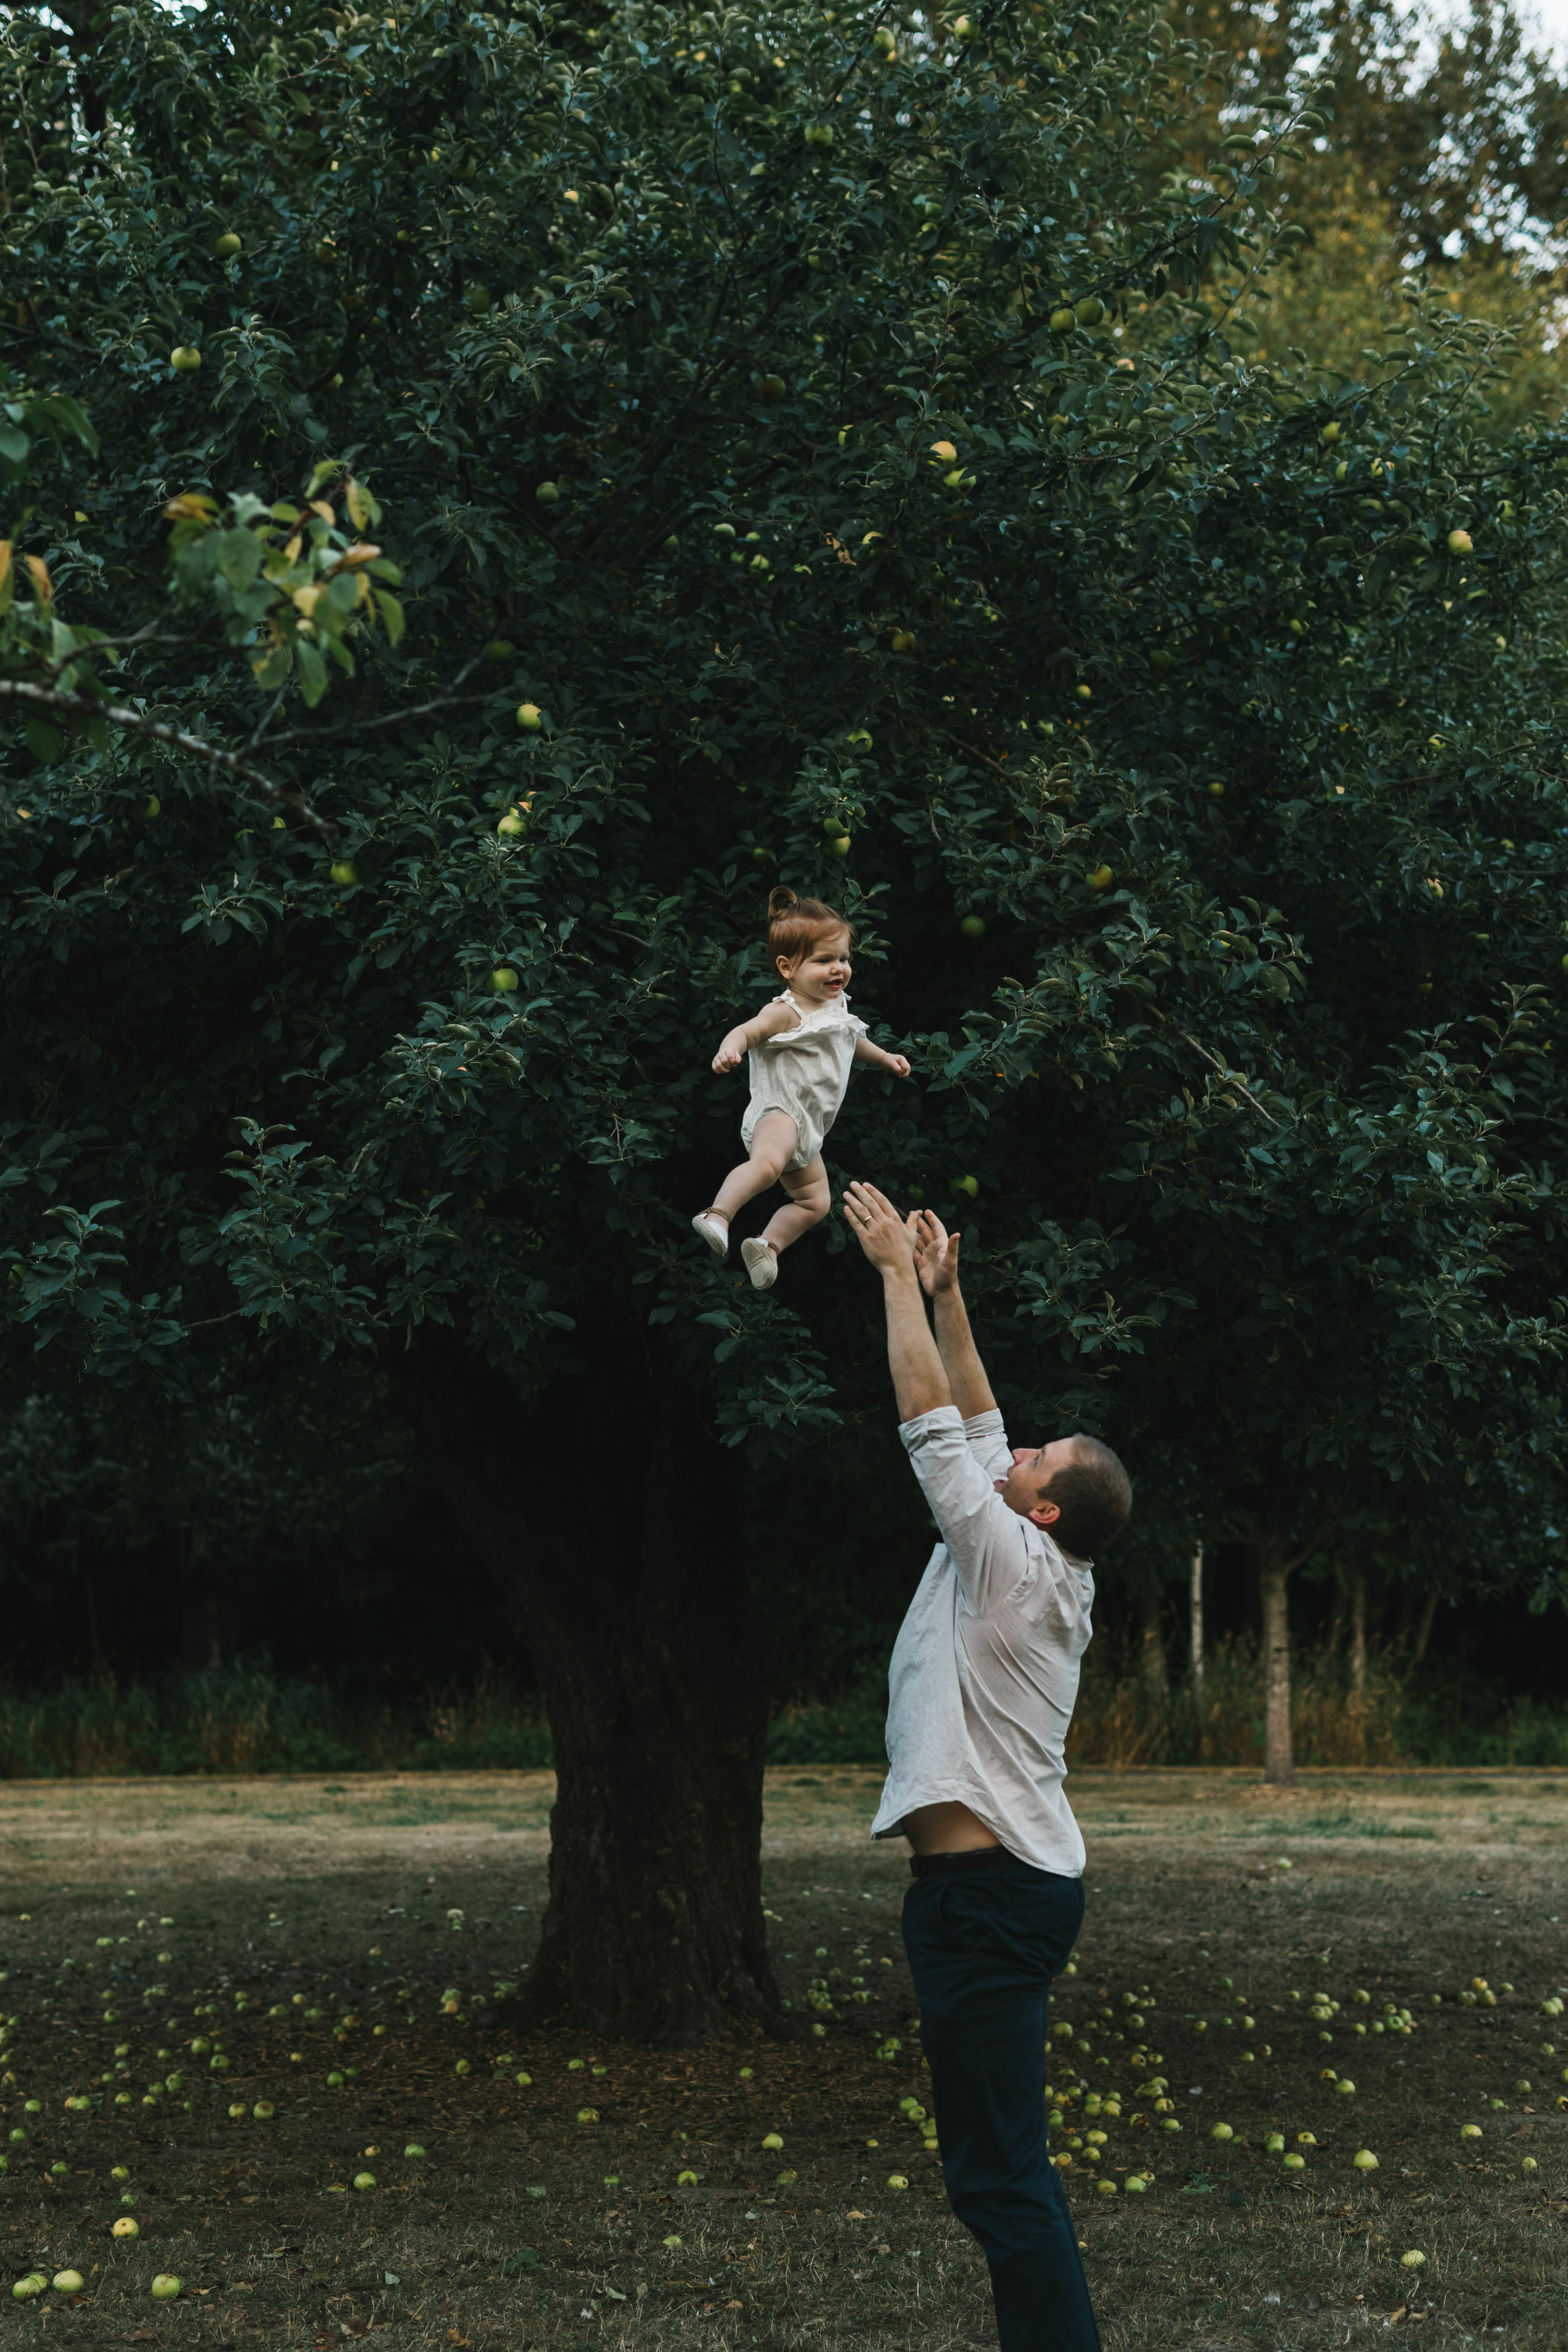 Playful and sweet family session in Issaquah at golden hour and twilight Mom and Dad with their toddler photographed by Chelsea Macor Photography in a playful and intimate way-18.jpg